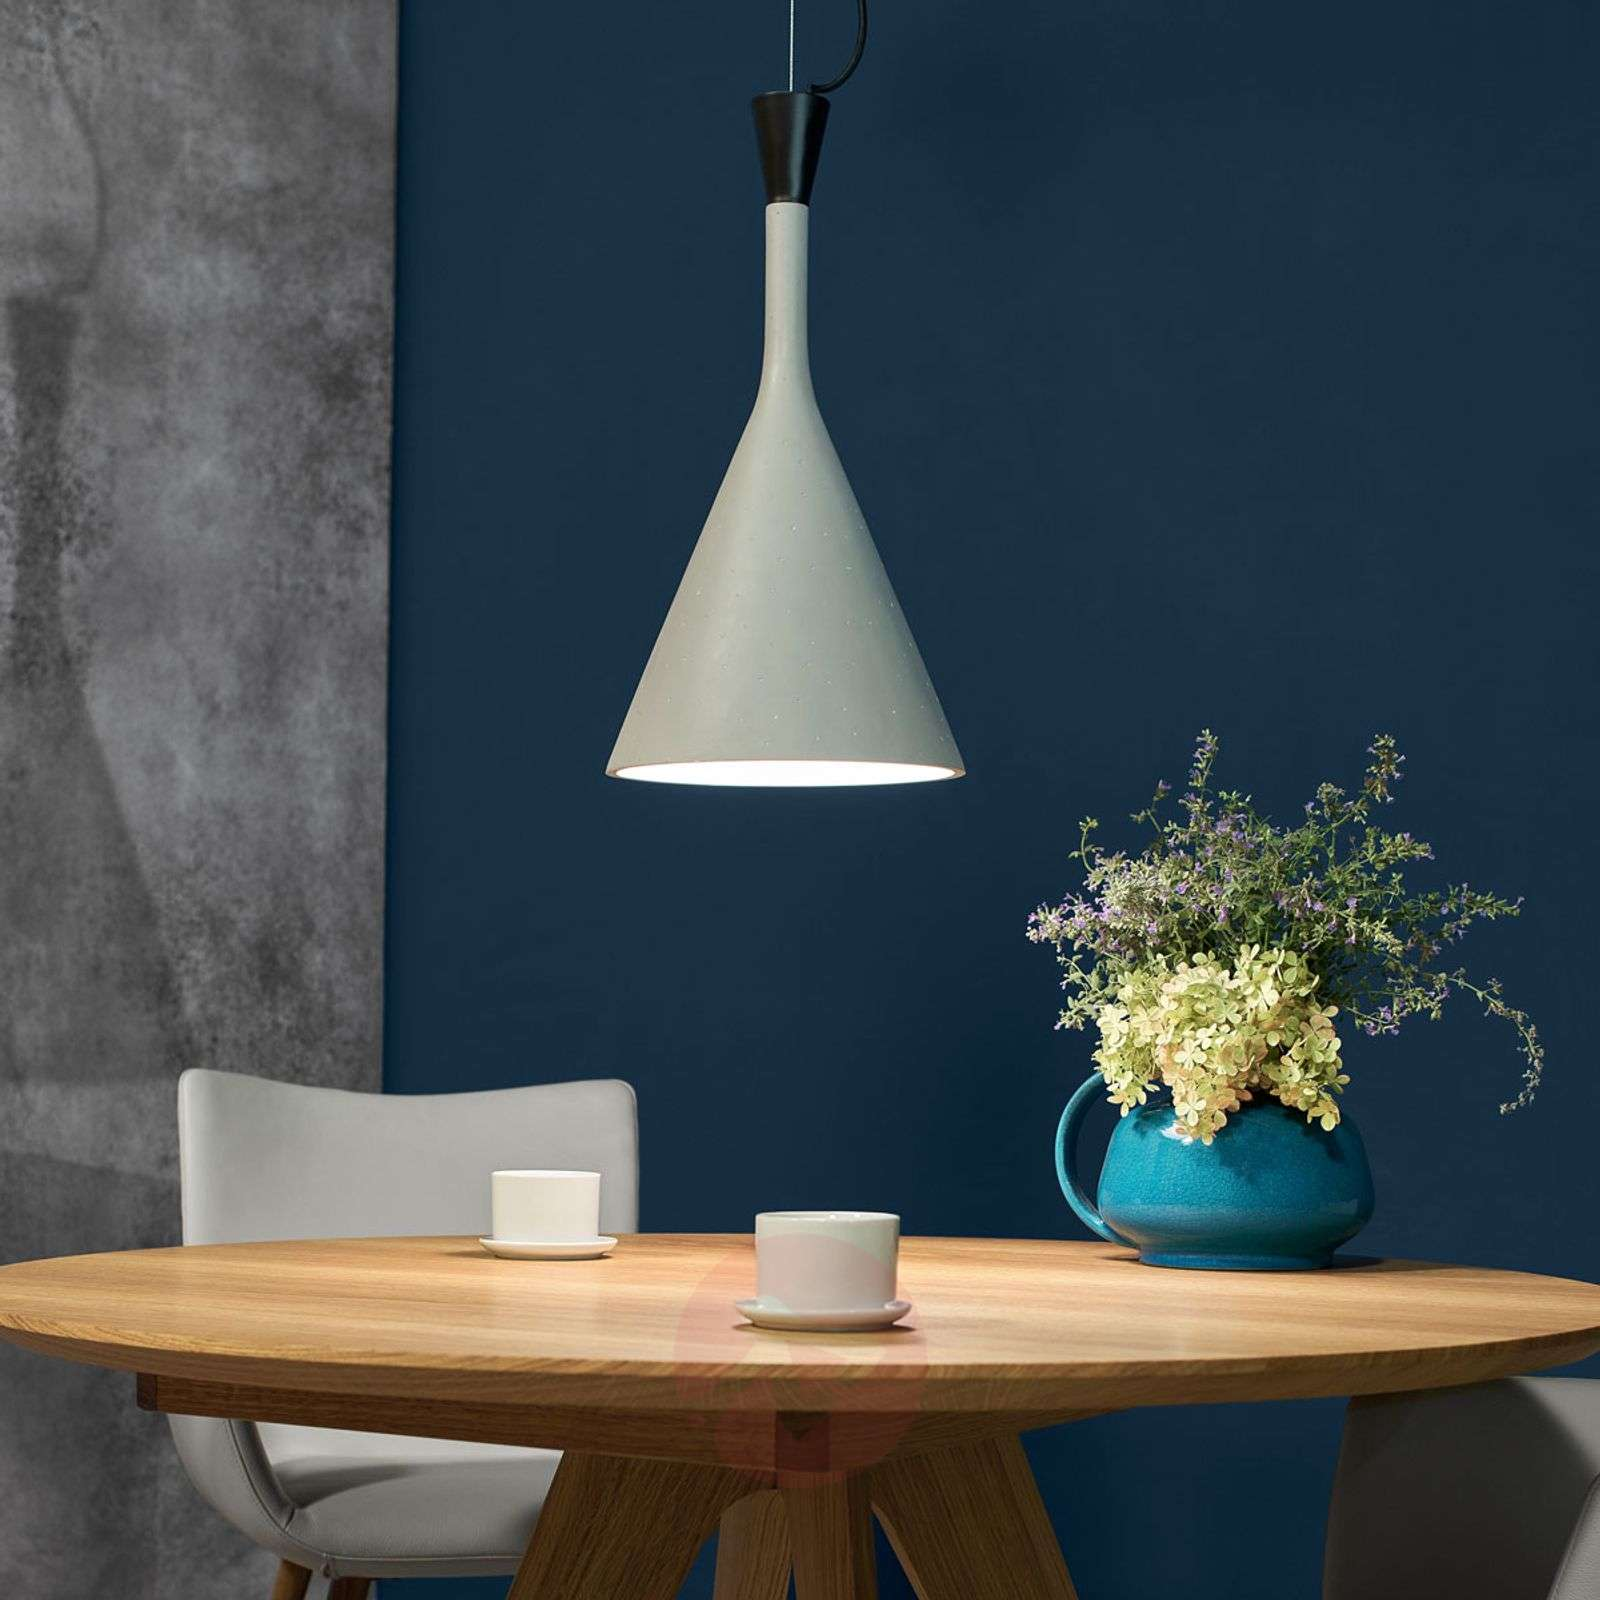 The concrete look Roddik pendant light-9004758-013